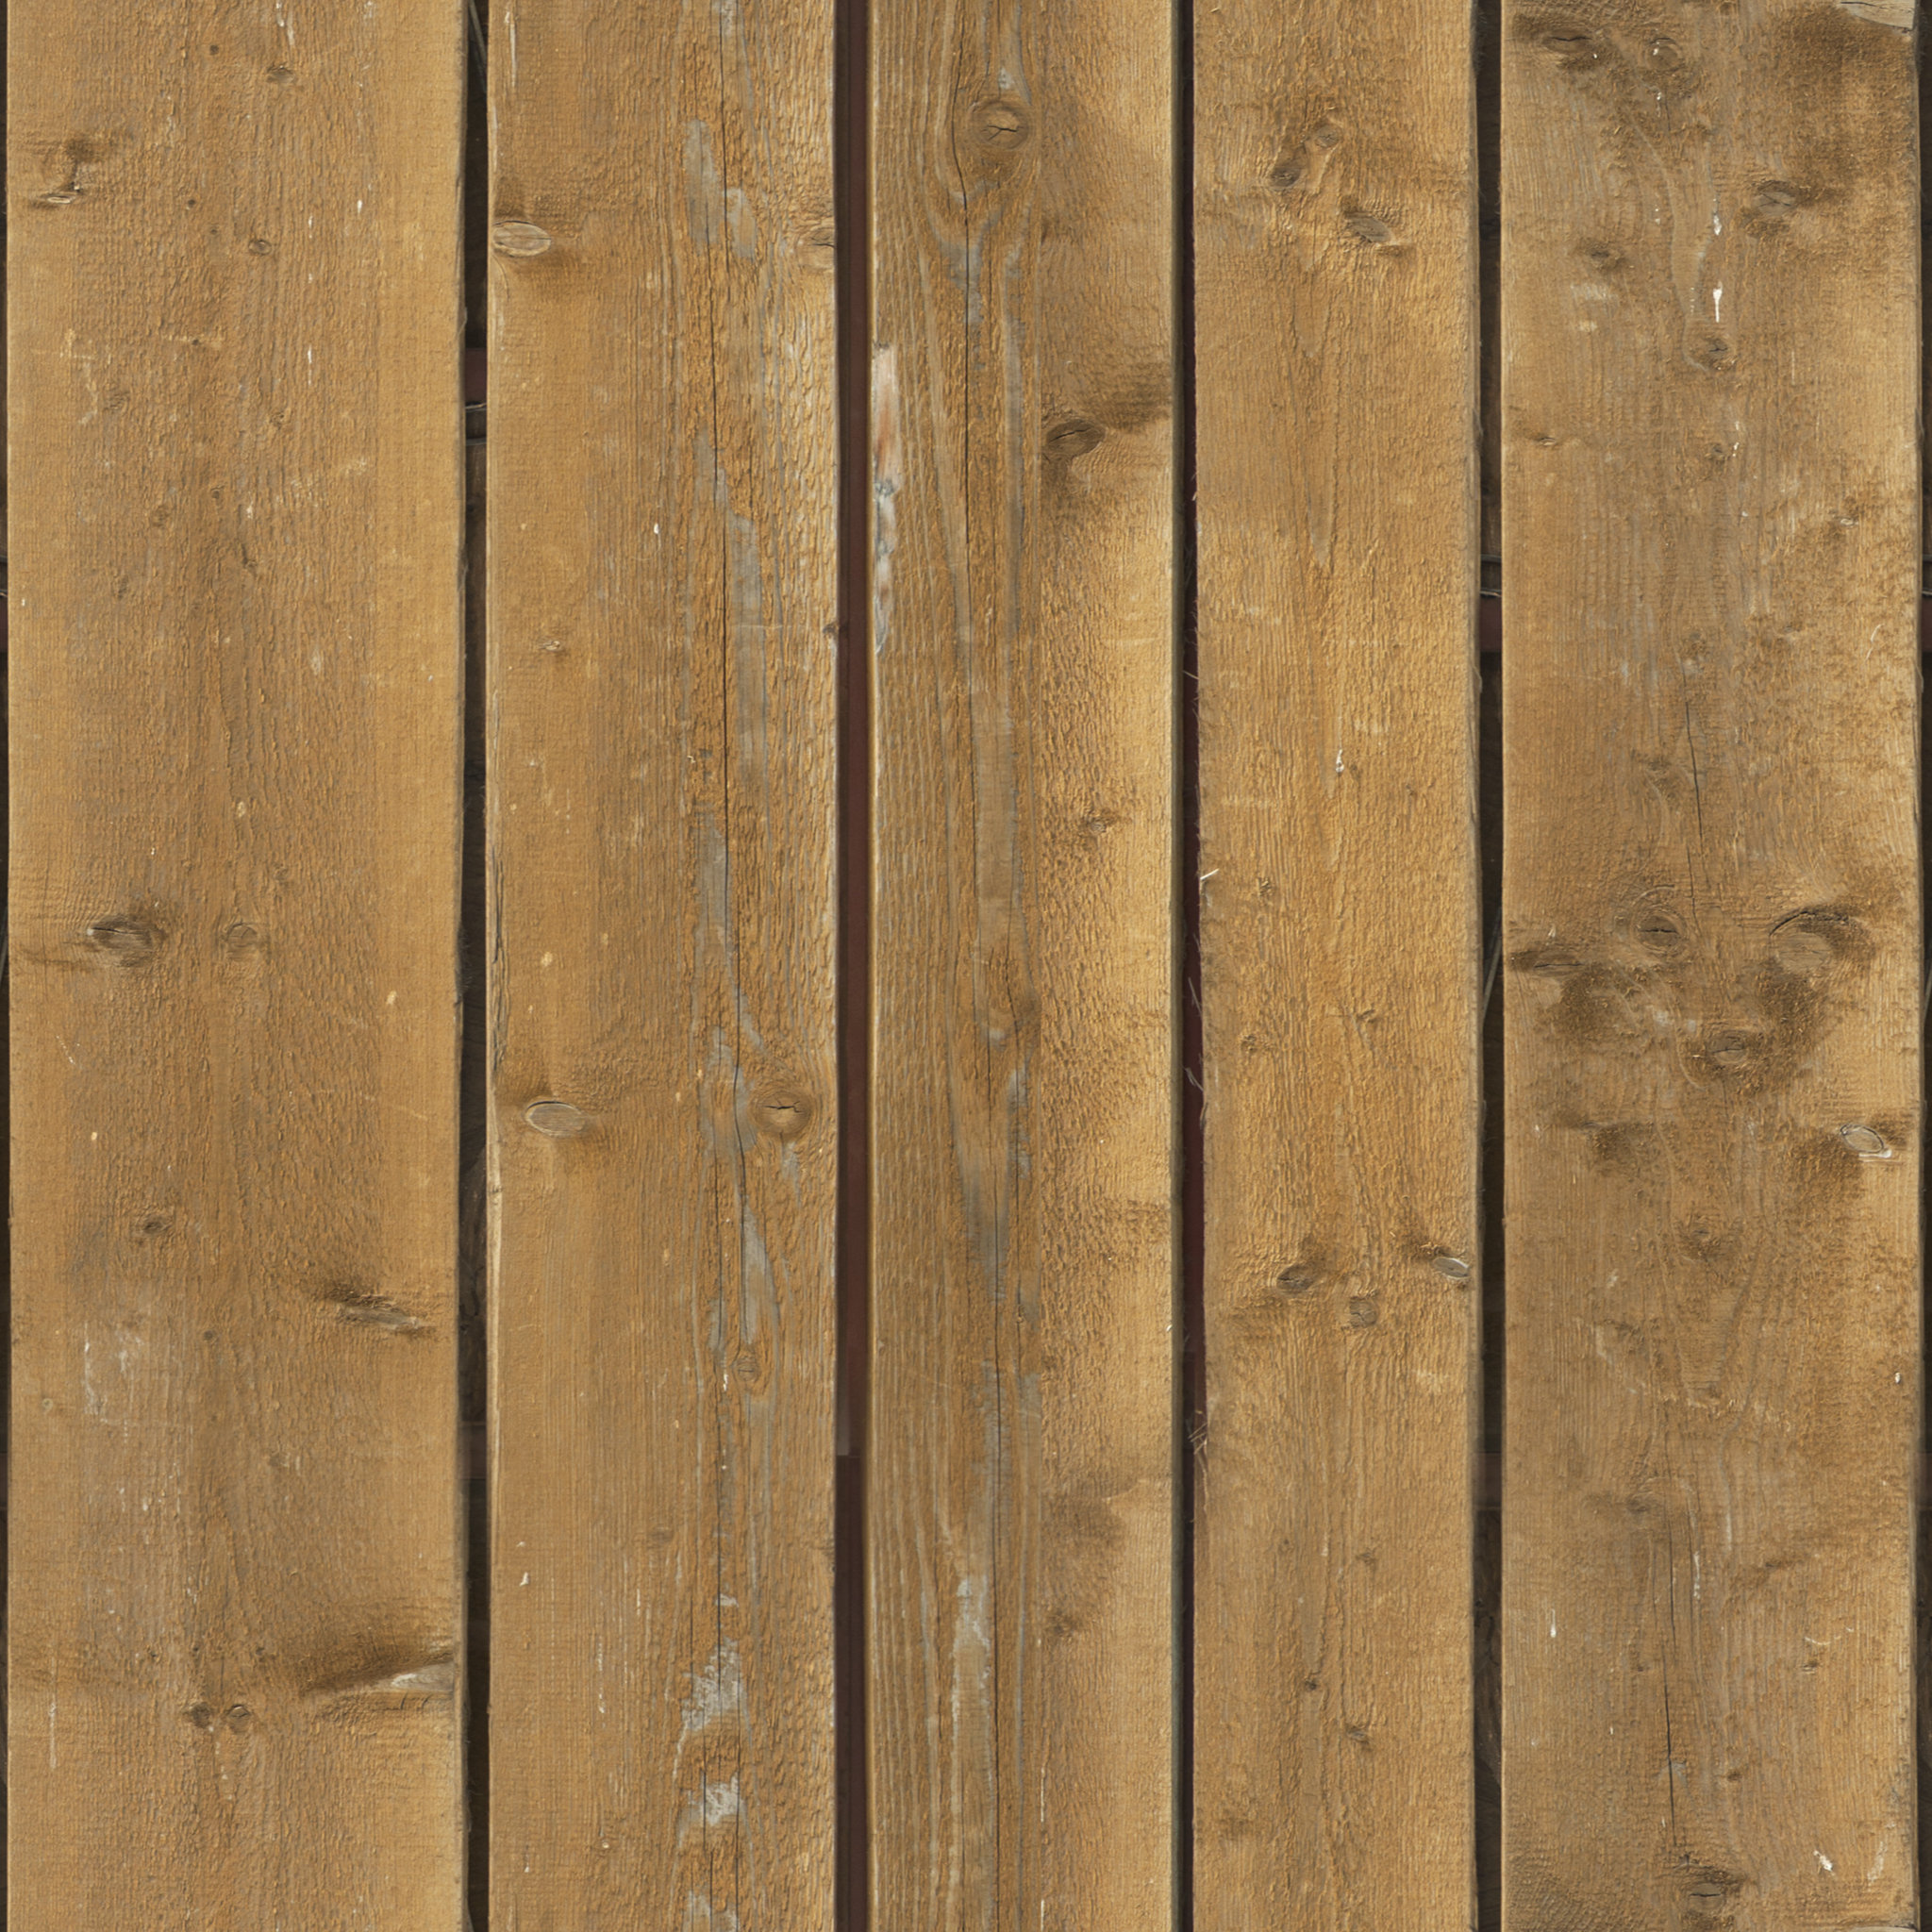 Amendoim Wood Fence.jpg